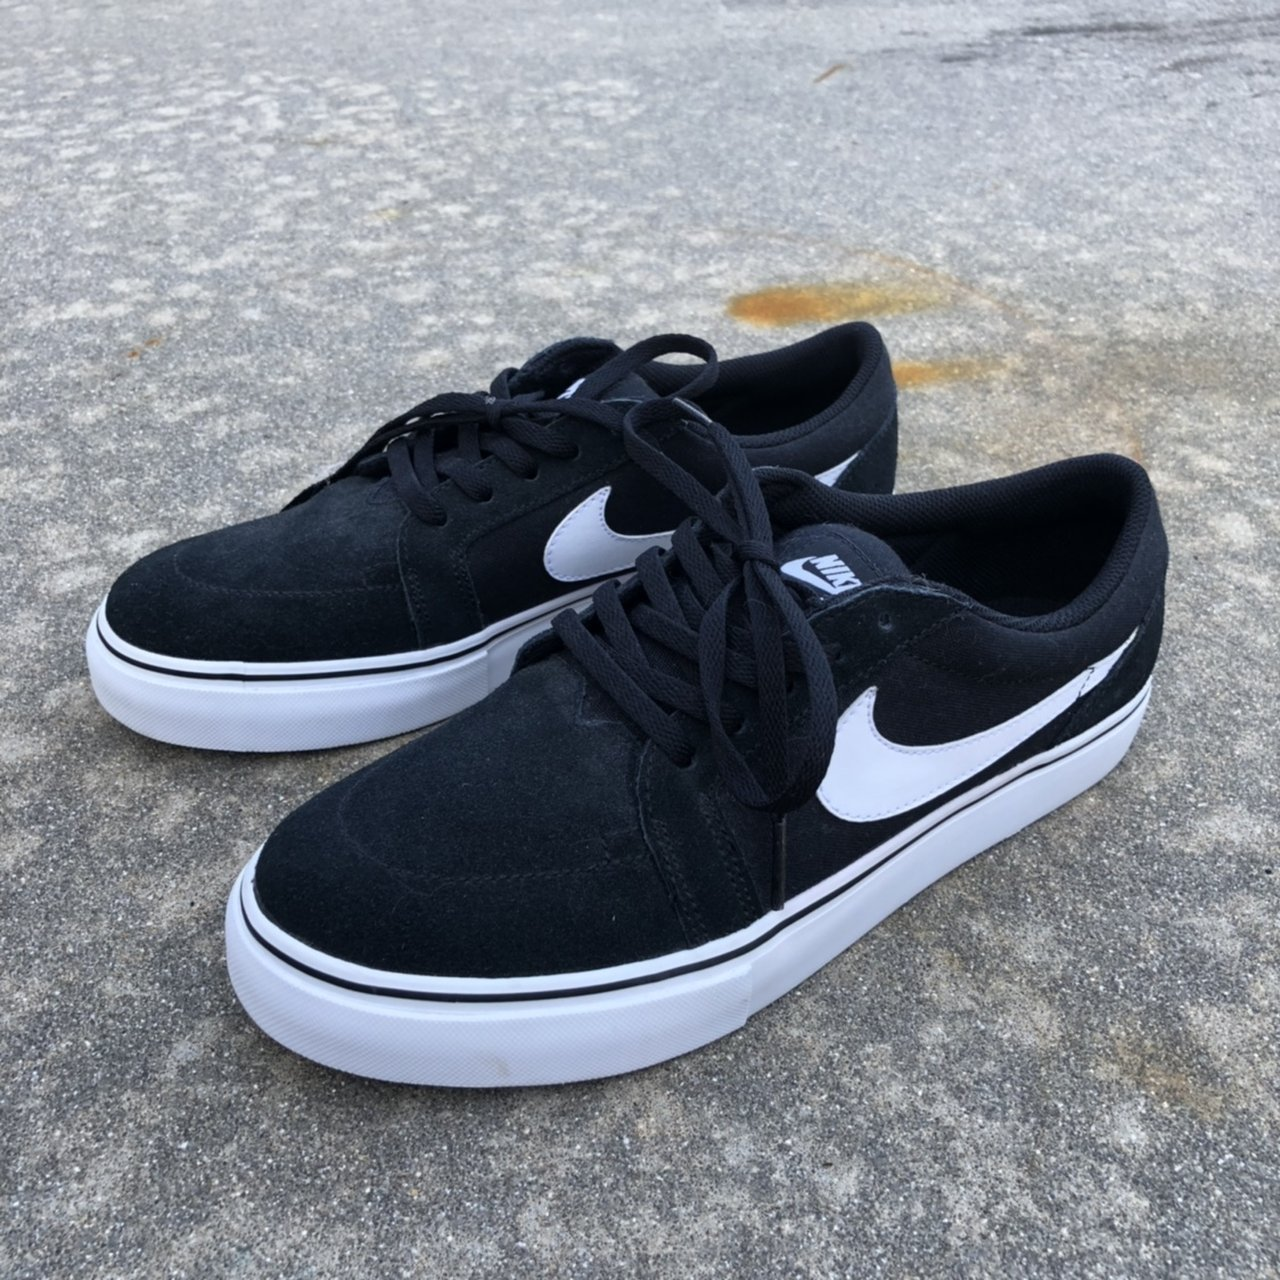 BLACK NIKE SUEDE SB SHOES don't know